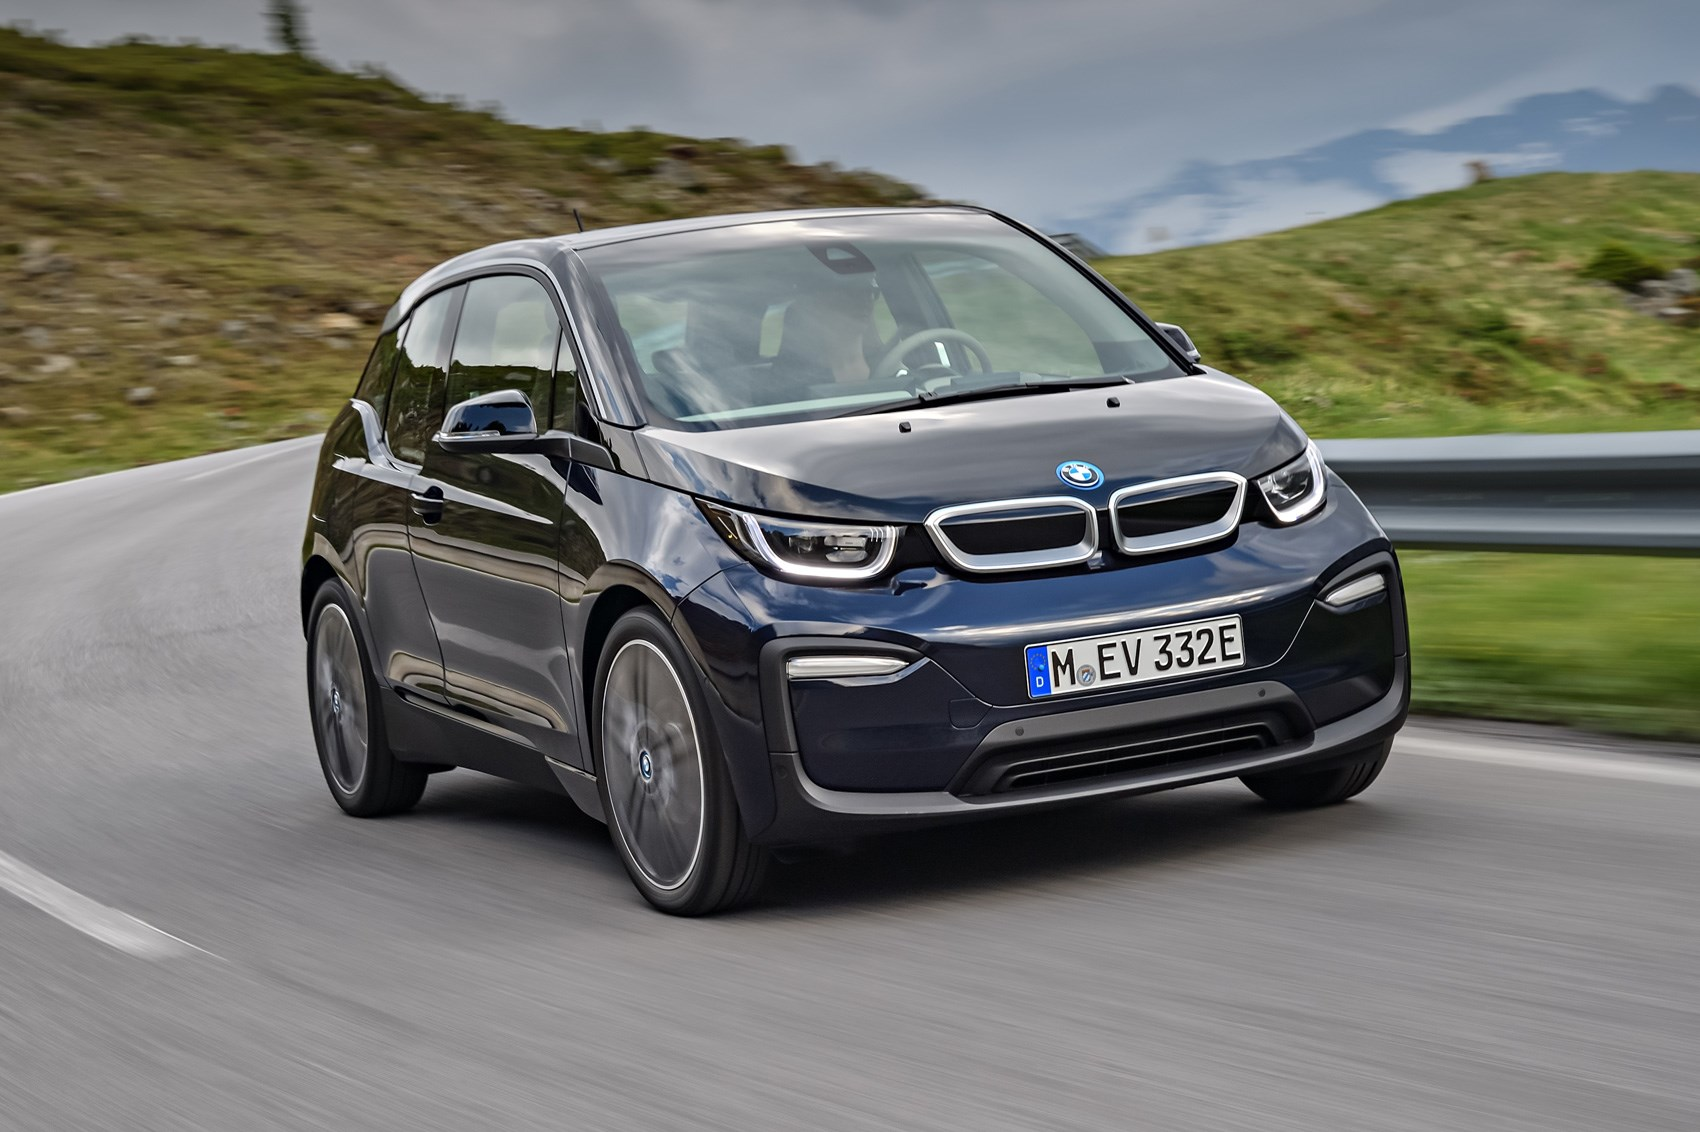 Bmw I3 And I3 S Electric Car Gets Power Boost For 2018 Car Magazine